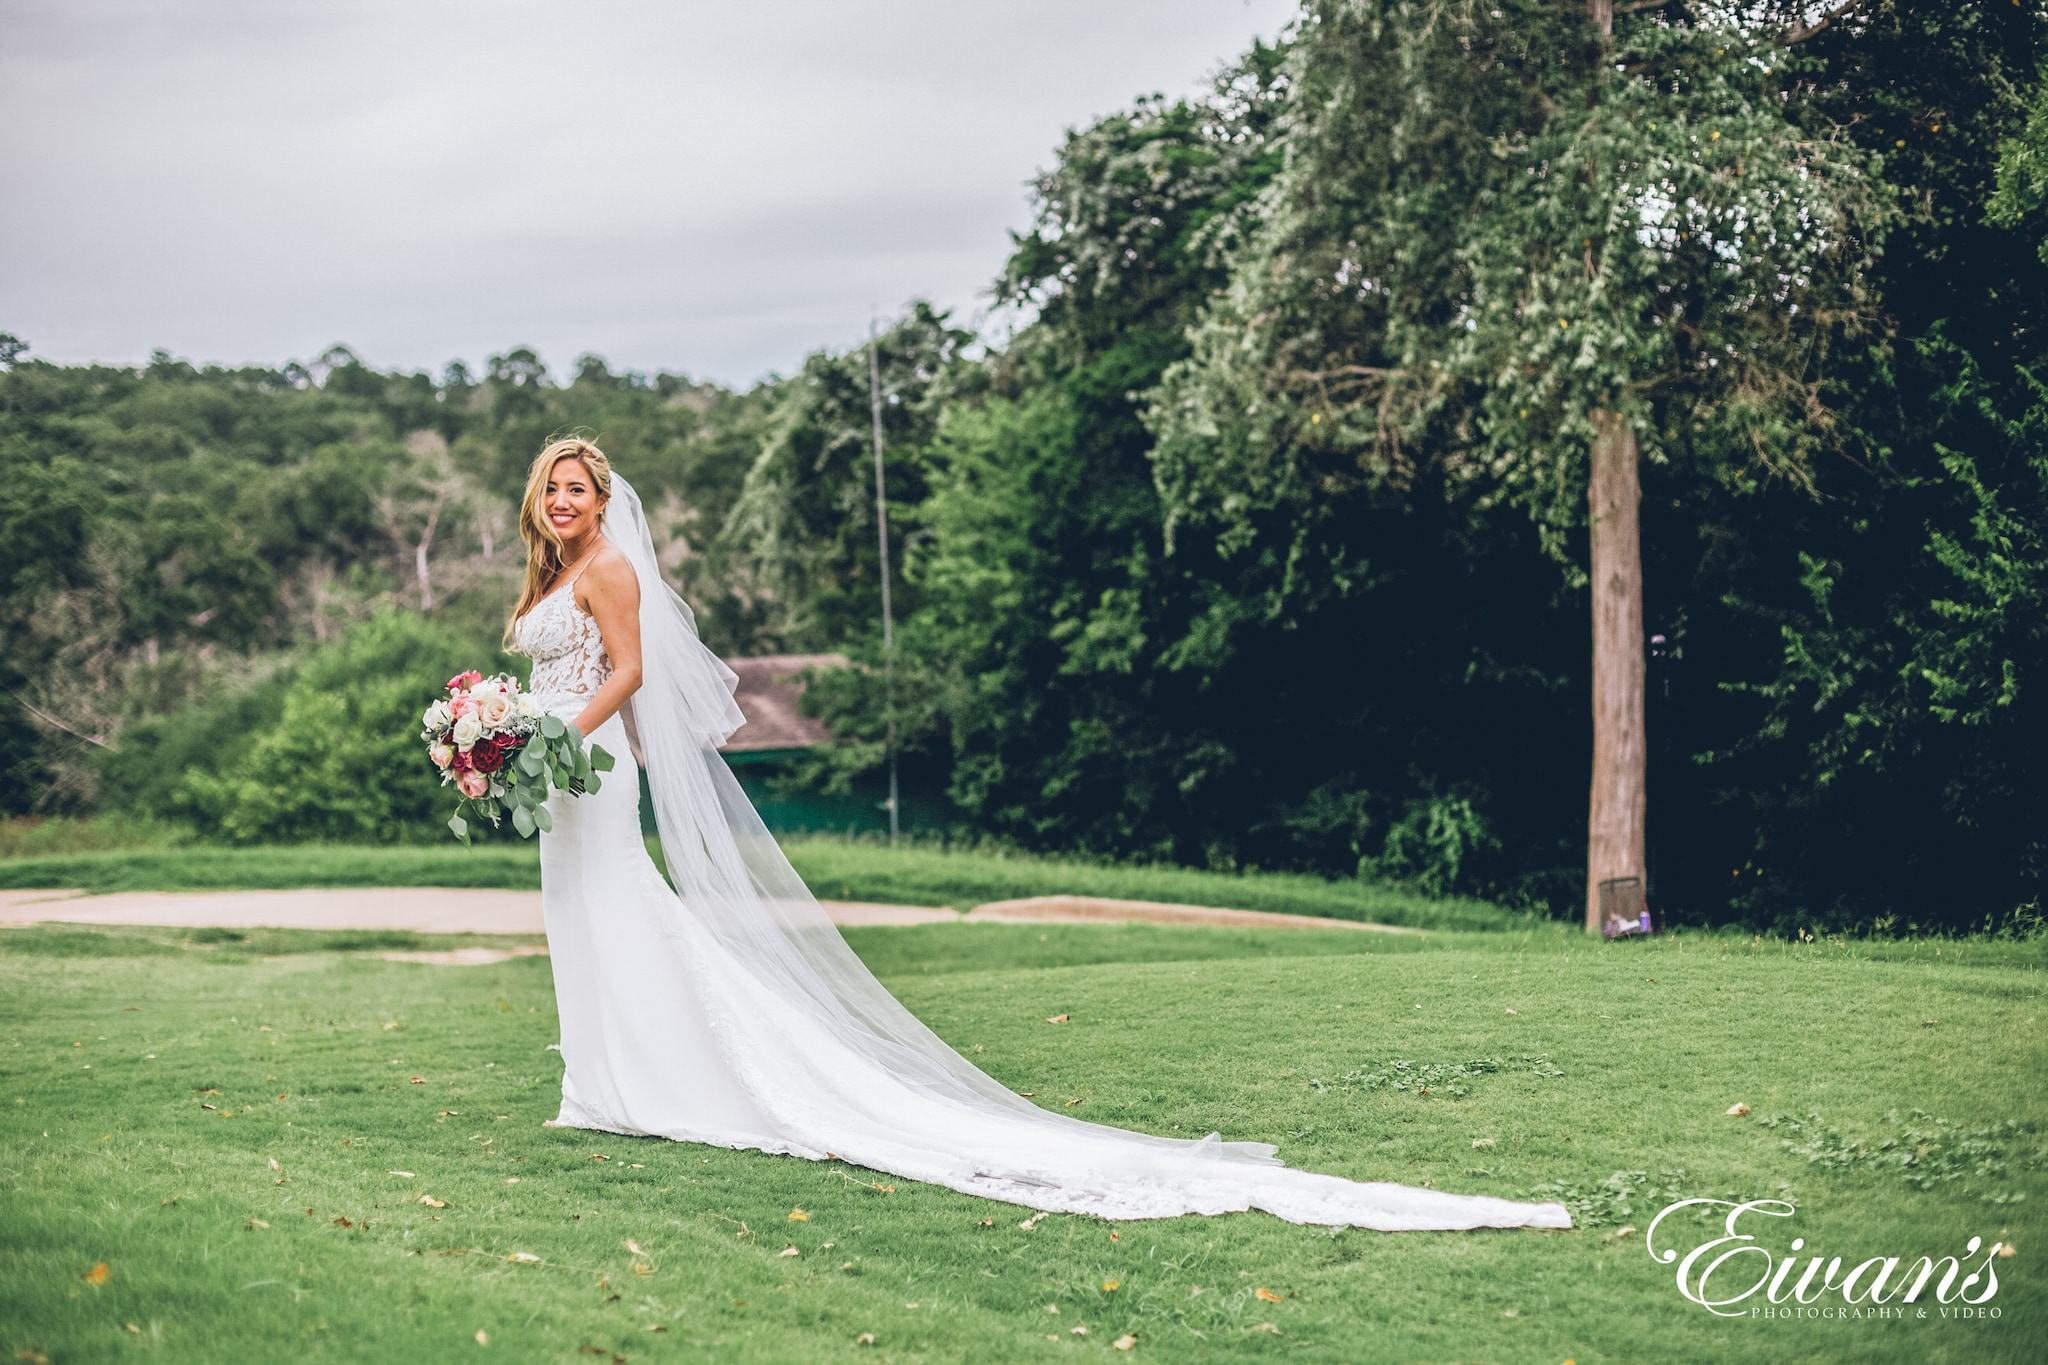 woman in white wedding dress standing on green grass field during daytime